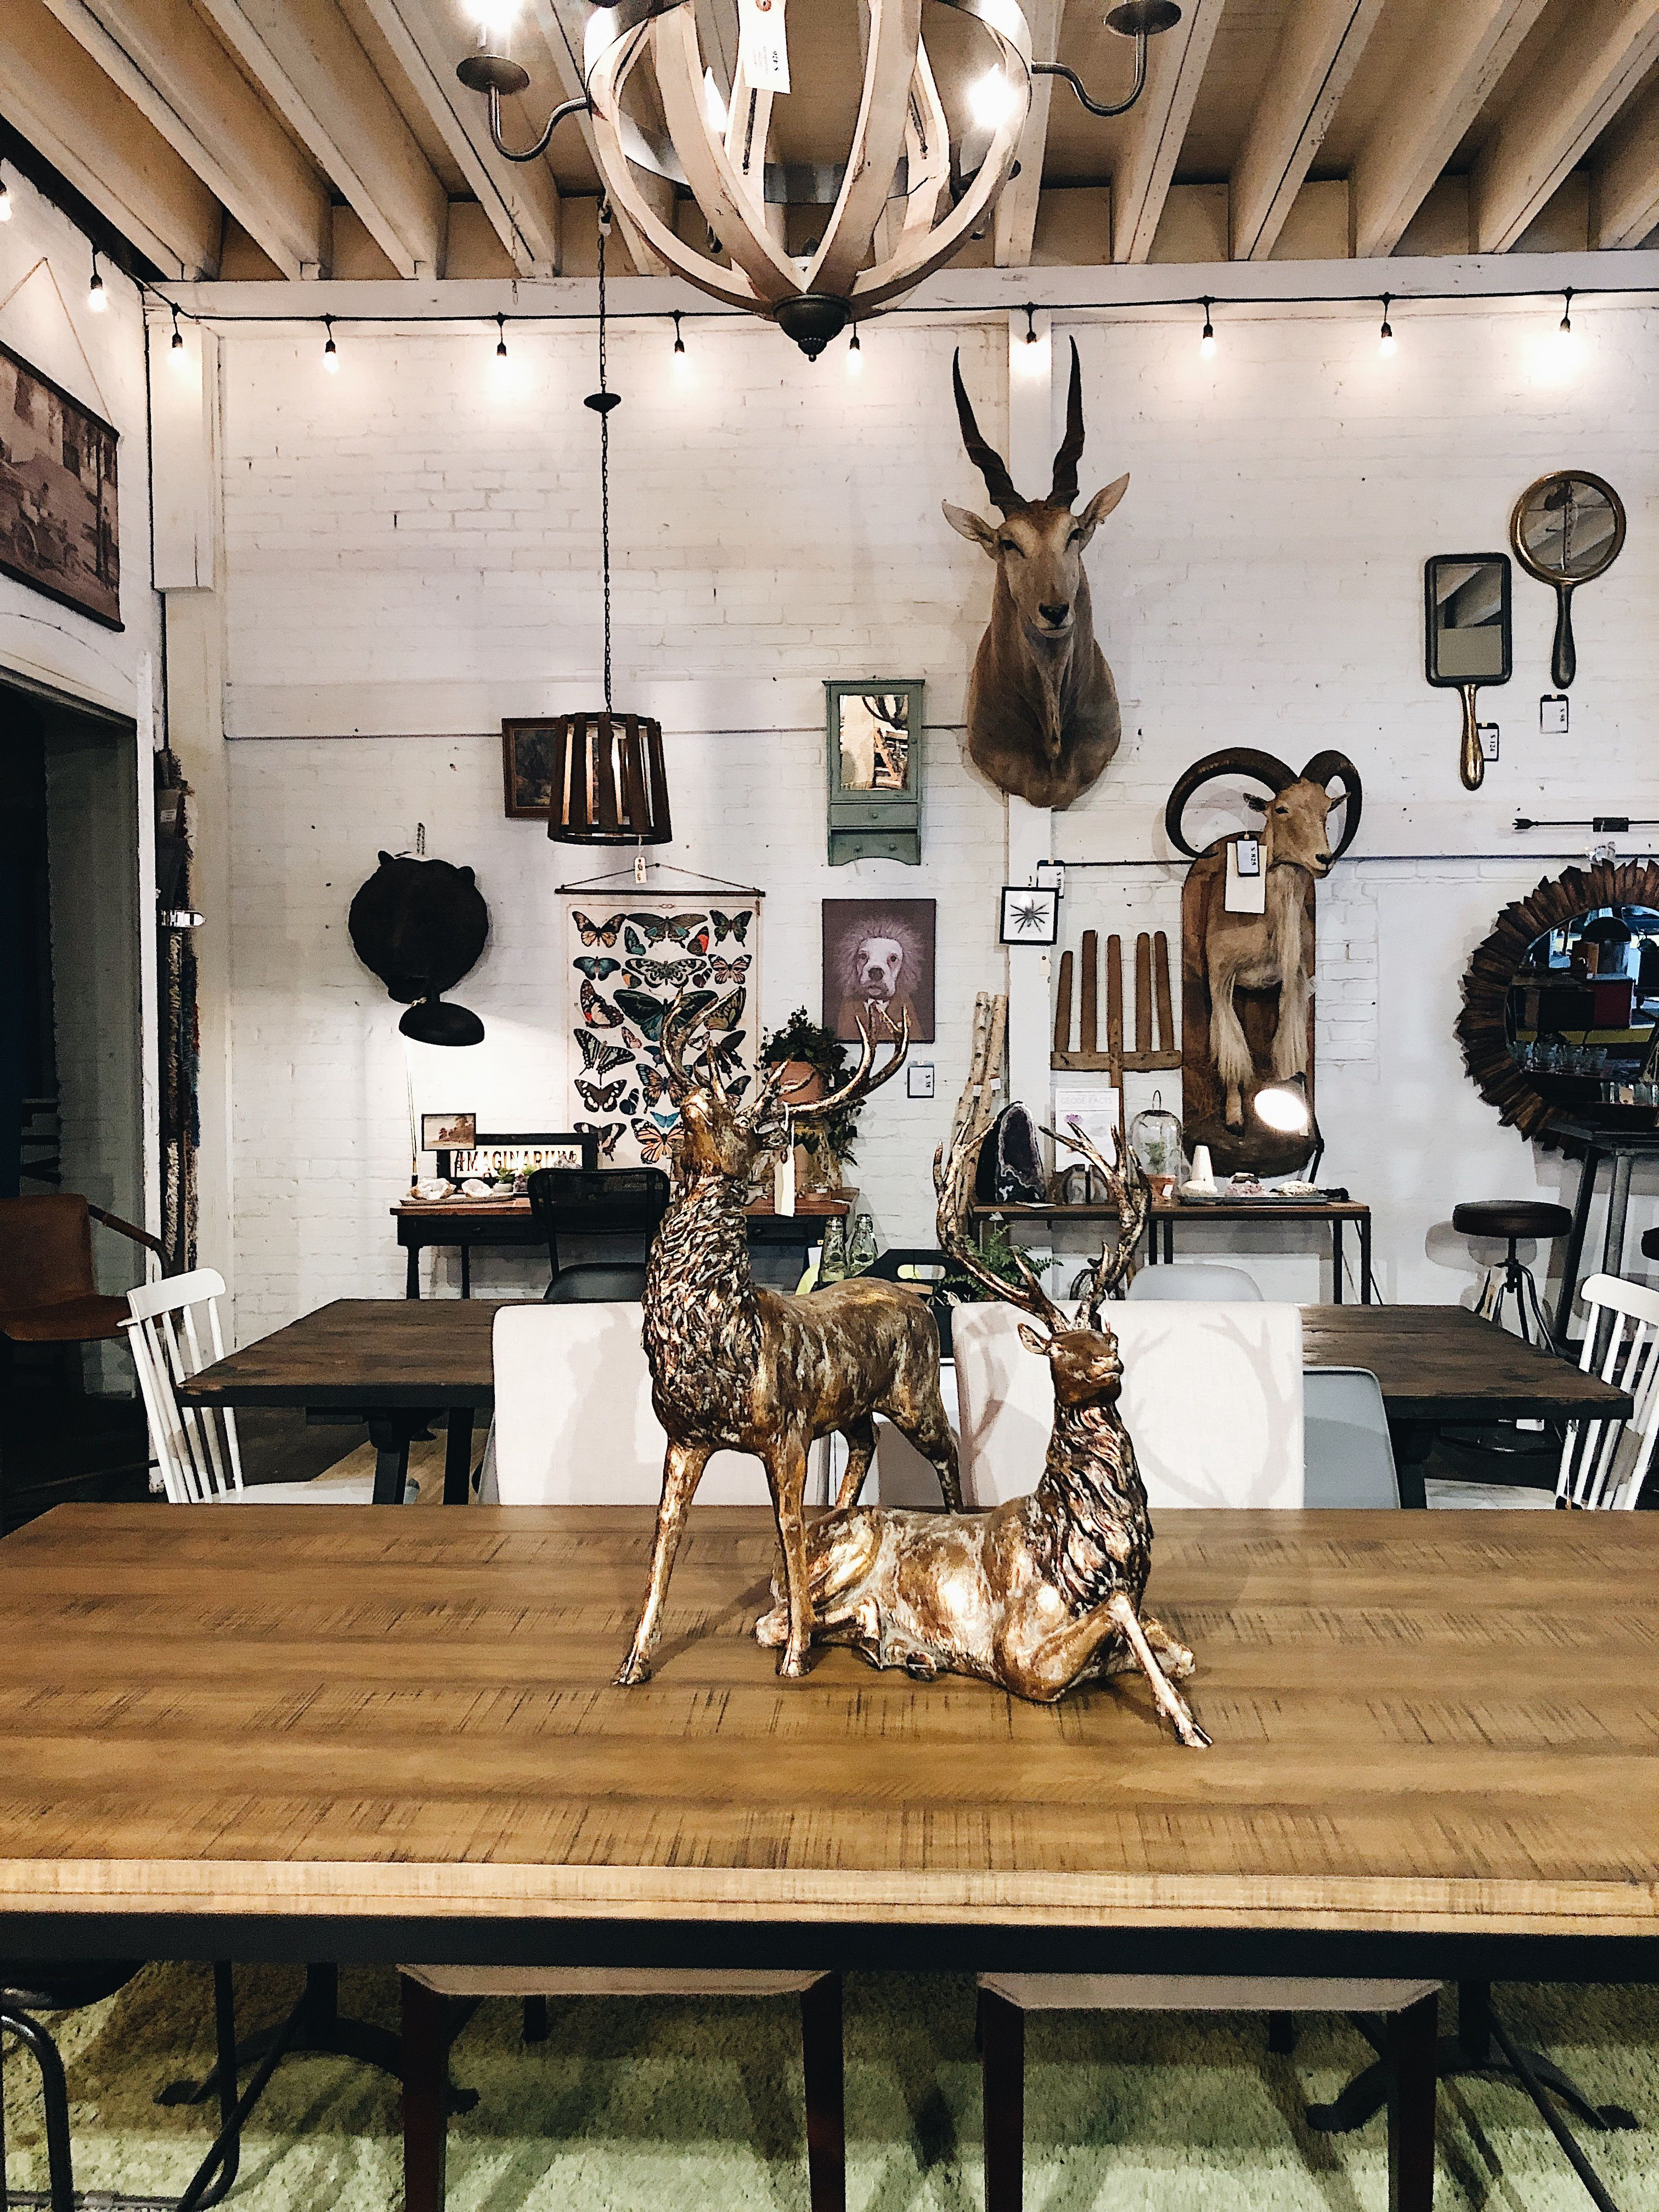 Bring The Beauty Of The Outdoors Indoors With Our Wide Array Of Animal Themed Accessories Home Decor Industrial House Home Furnishings